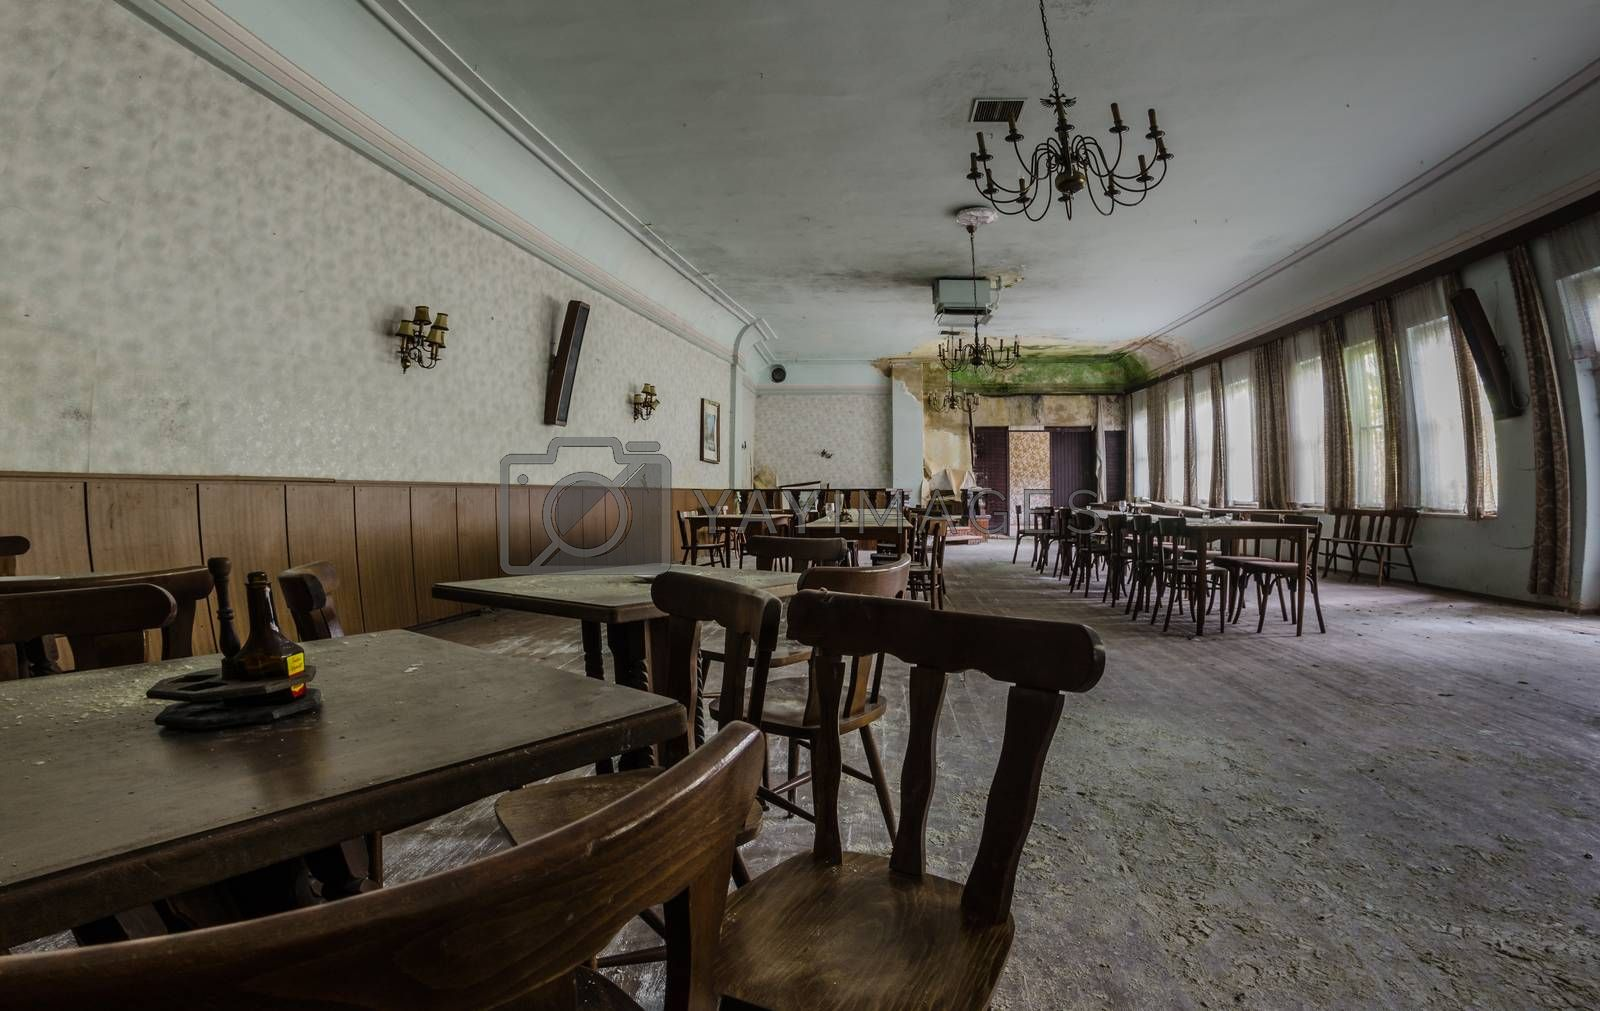 ballroom in abandoned guesthouse by thomaseder